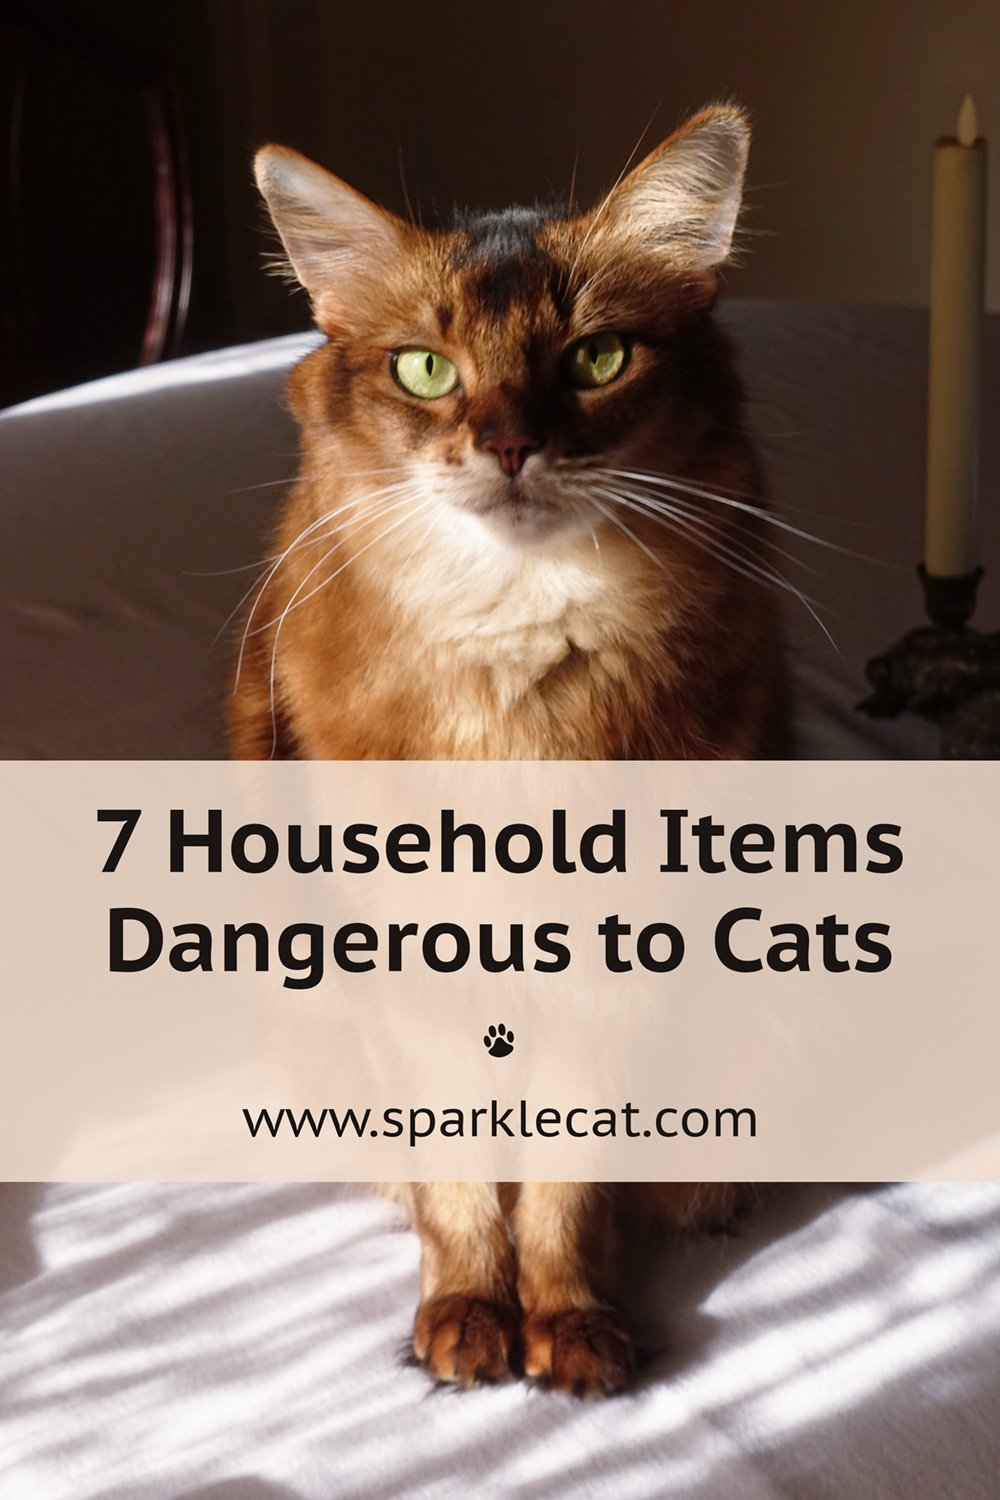 7 Household Items Dangerous to Cats